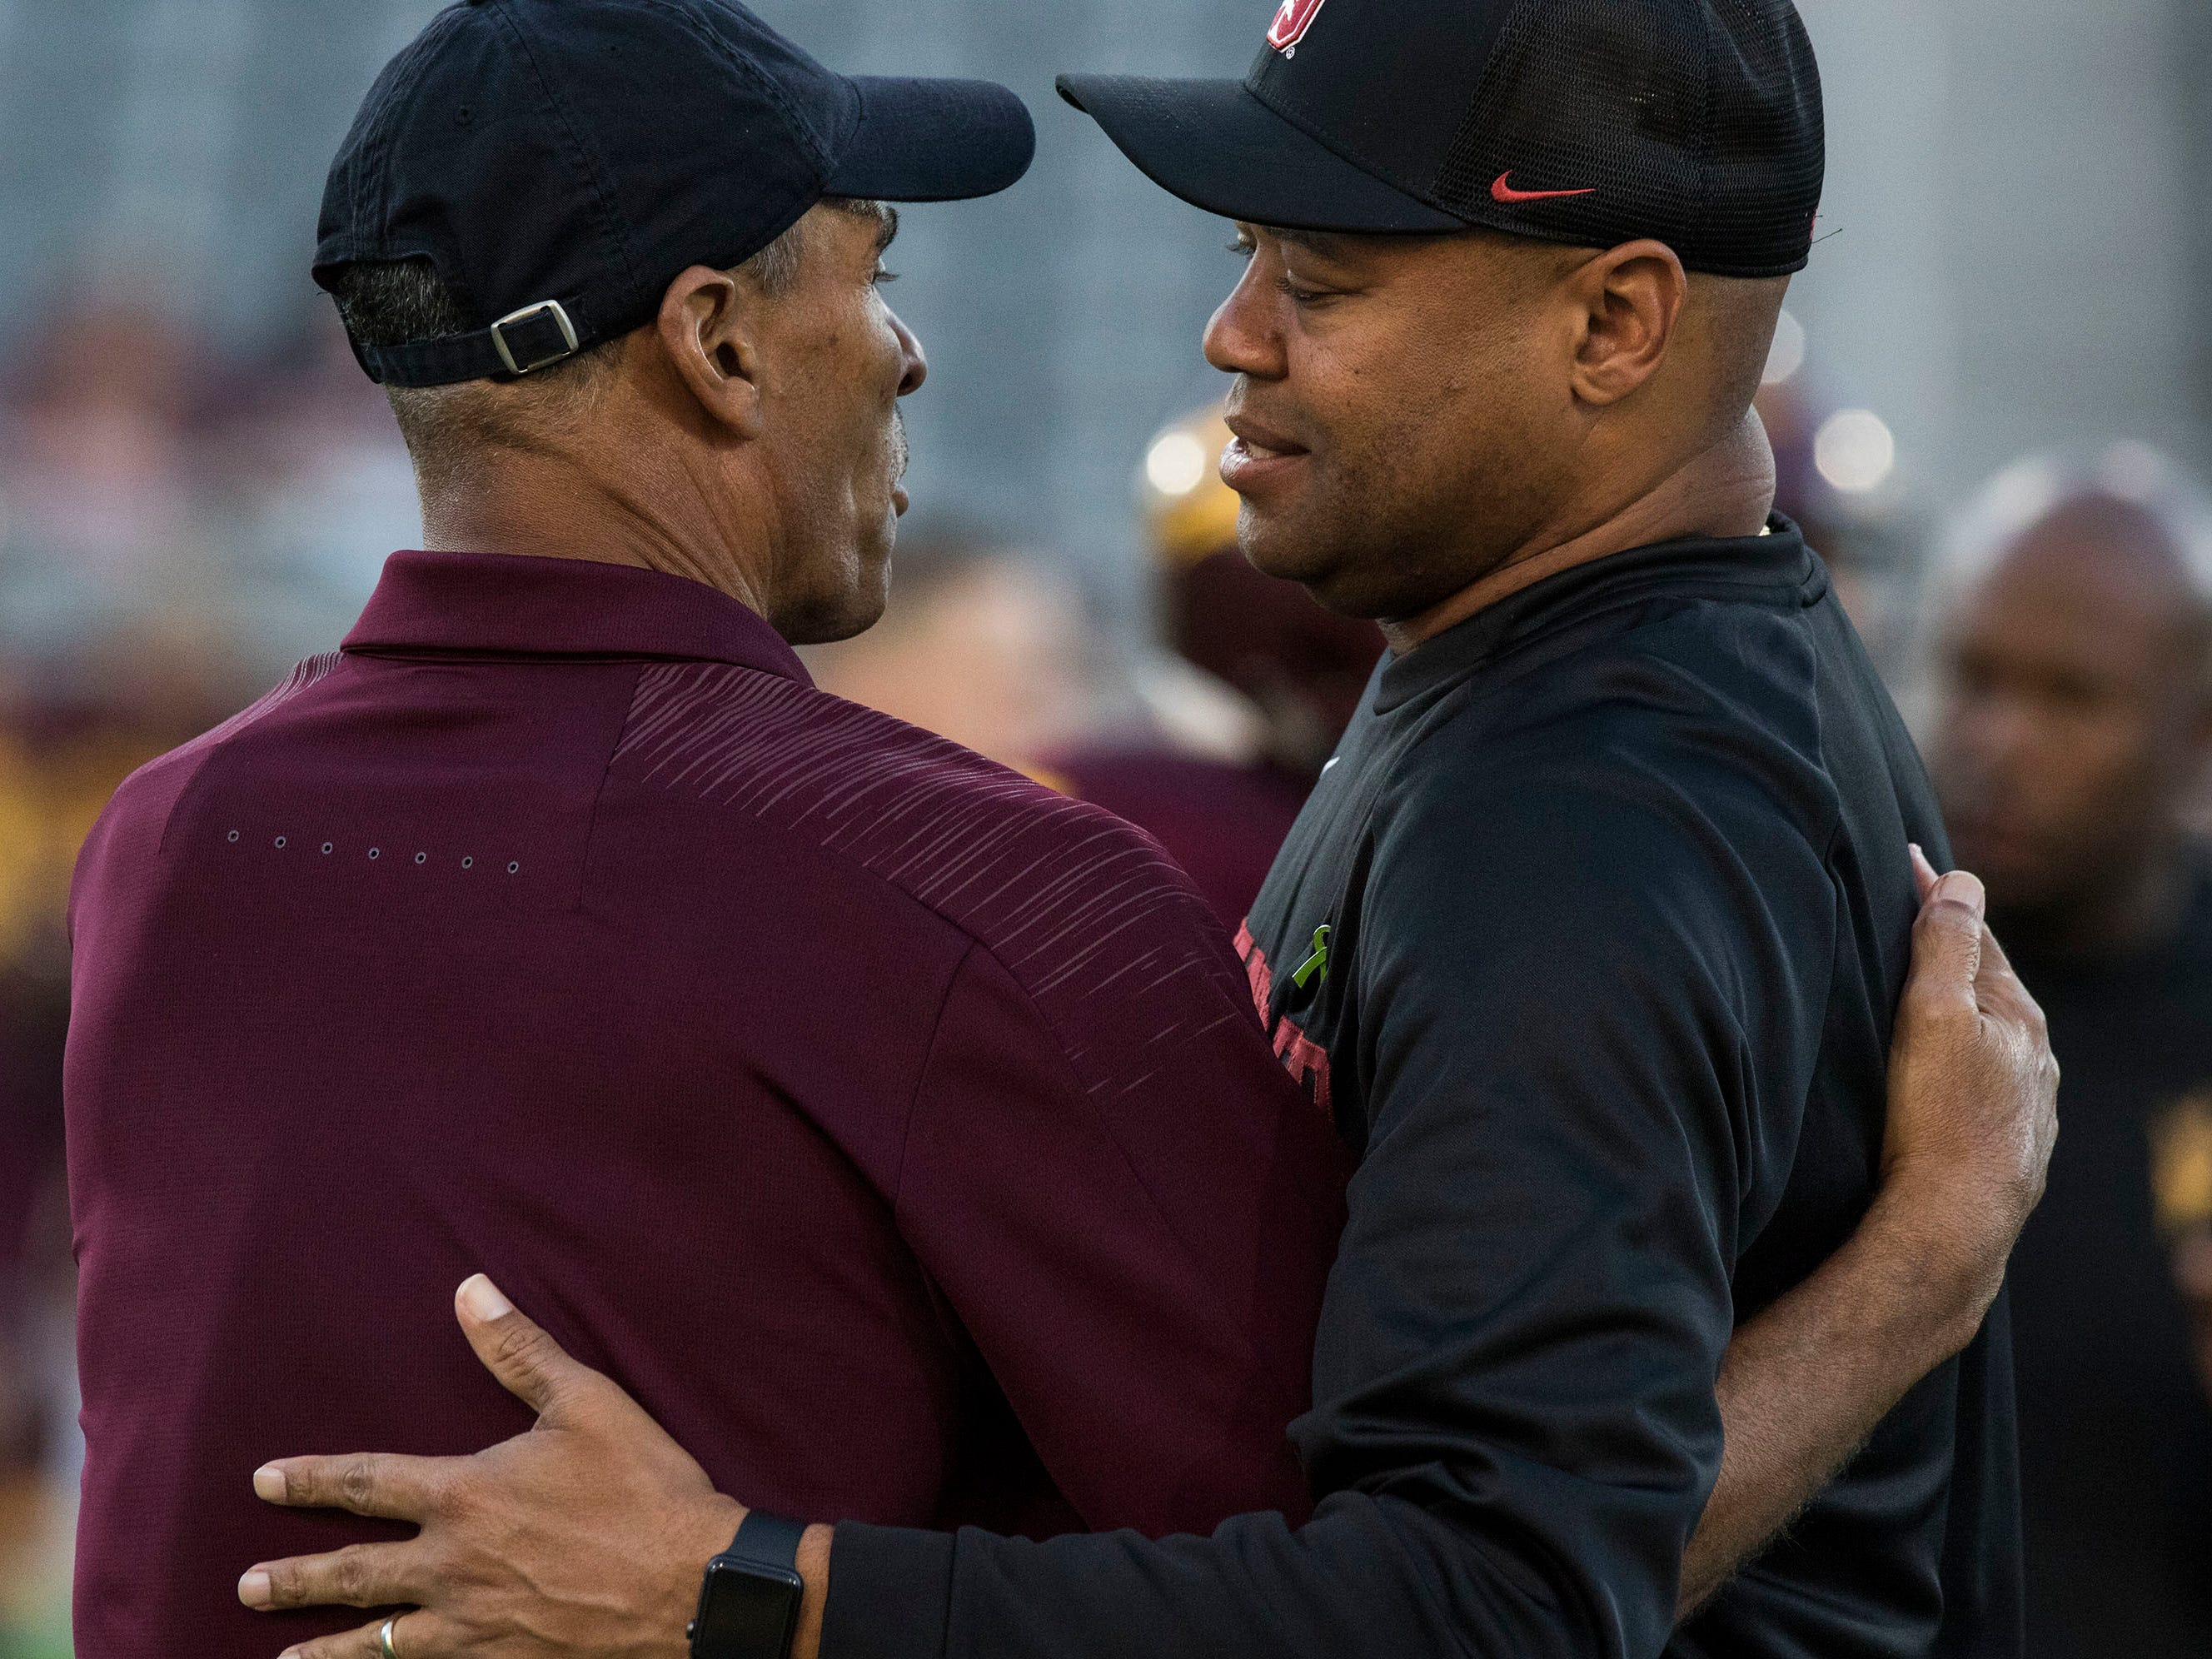 Arizona State head coach Herm Edwards, left, and Stanford head coach Dave Shaw hug before the first half of an NCAA college football game Thursday, Oct. 18, 2018, in Tempe, Ariz.